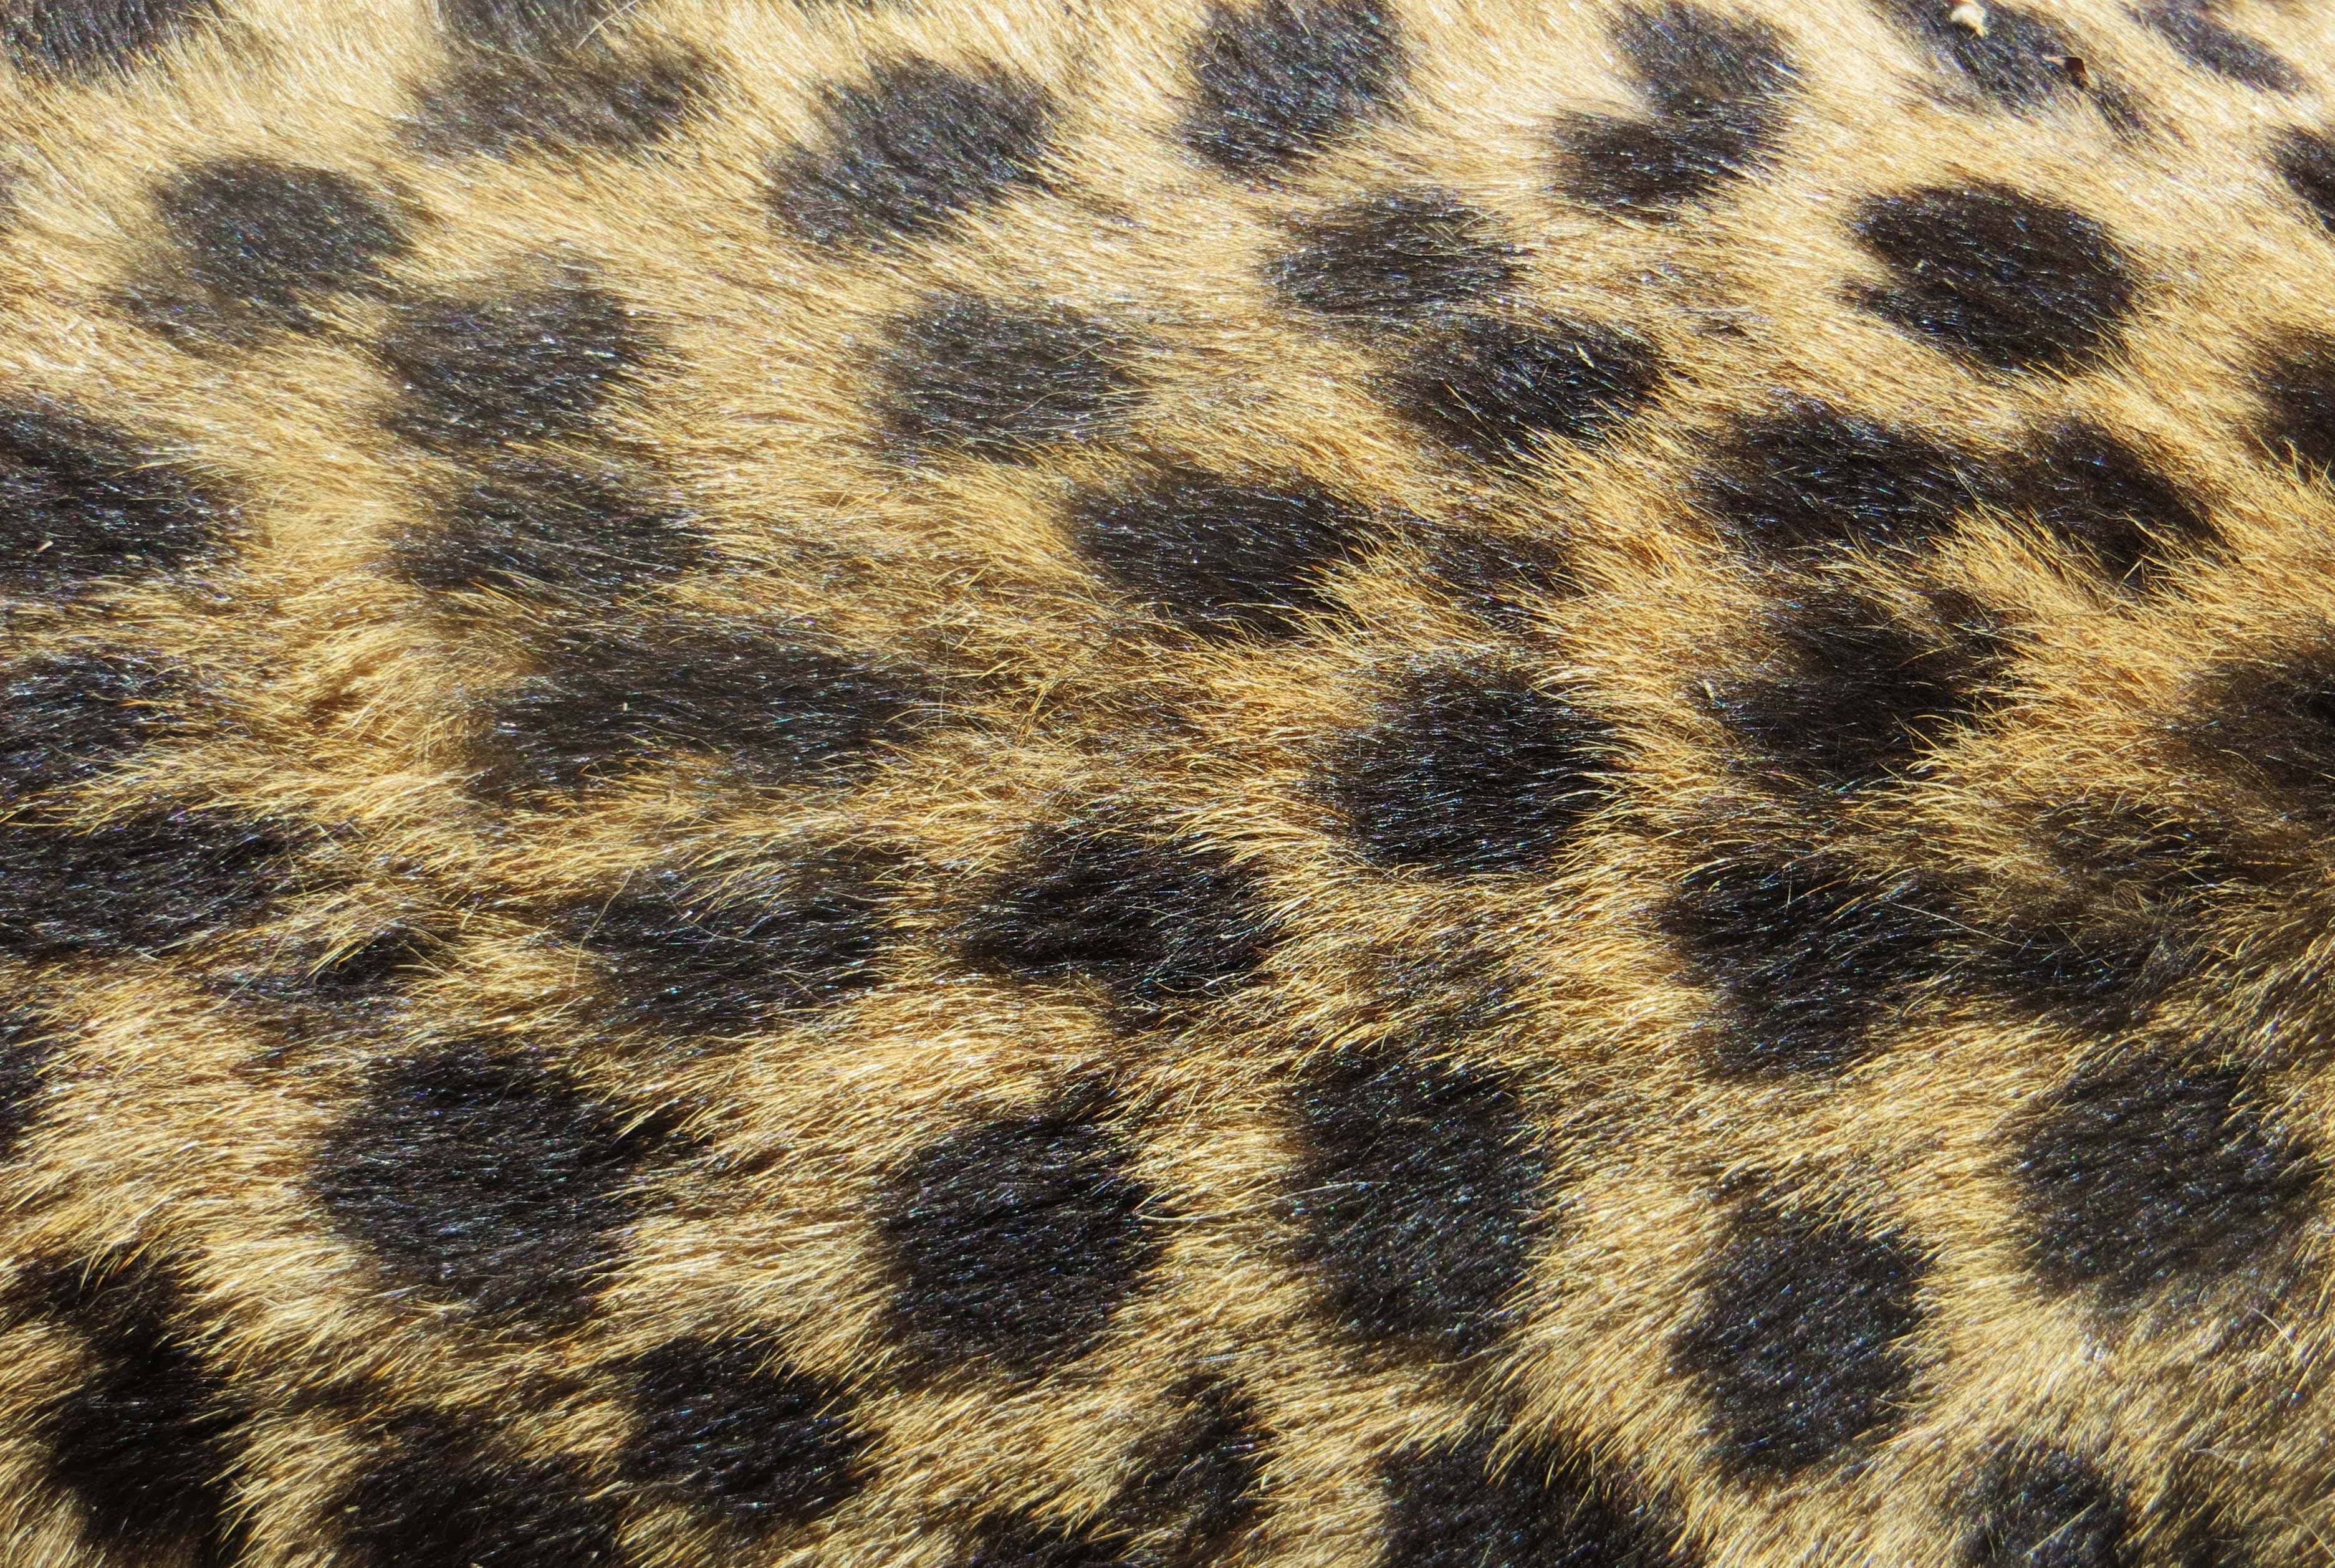 Brown and Black Textile